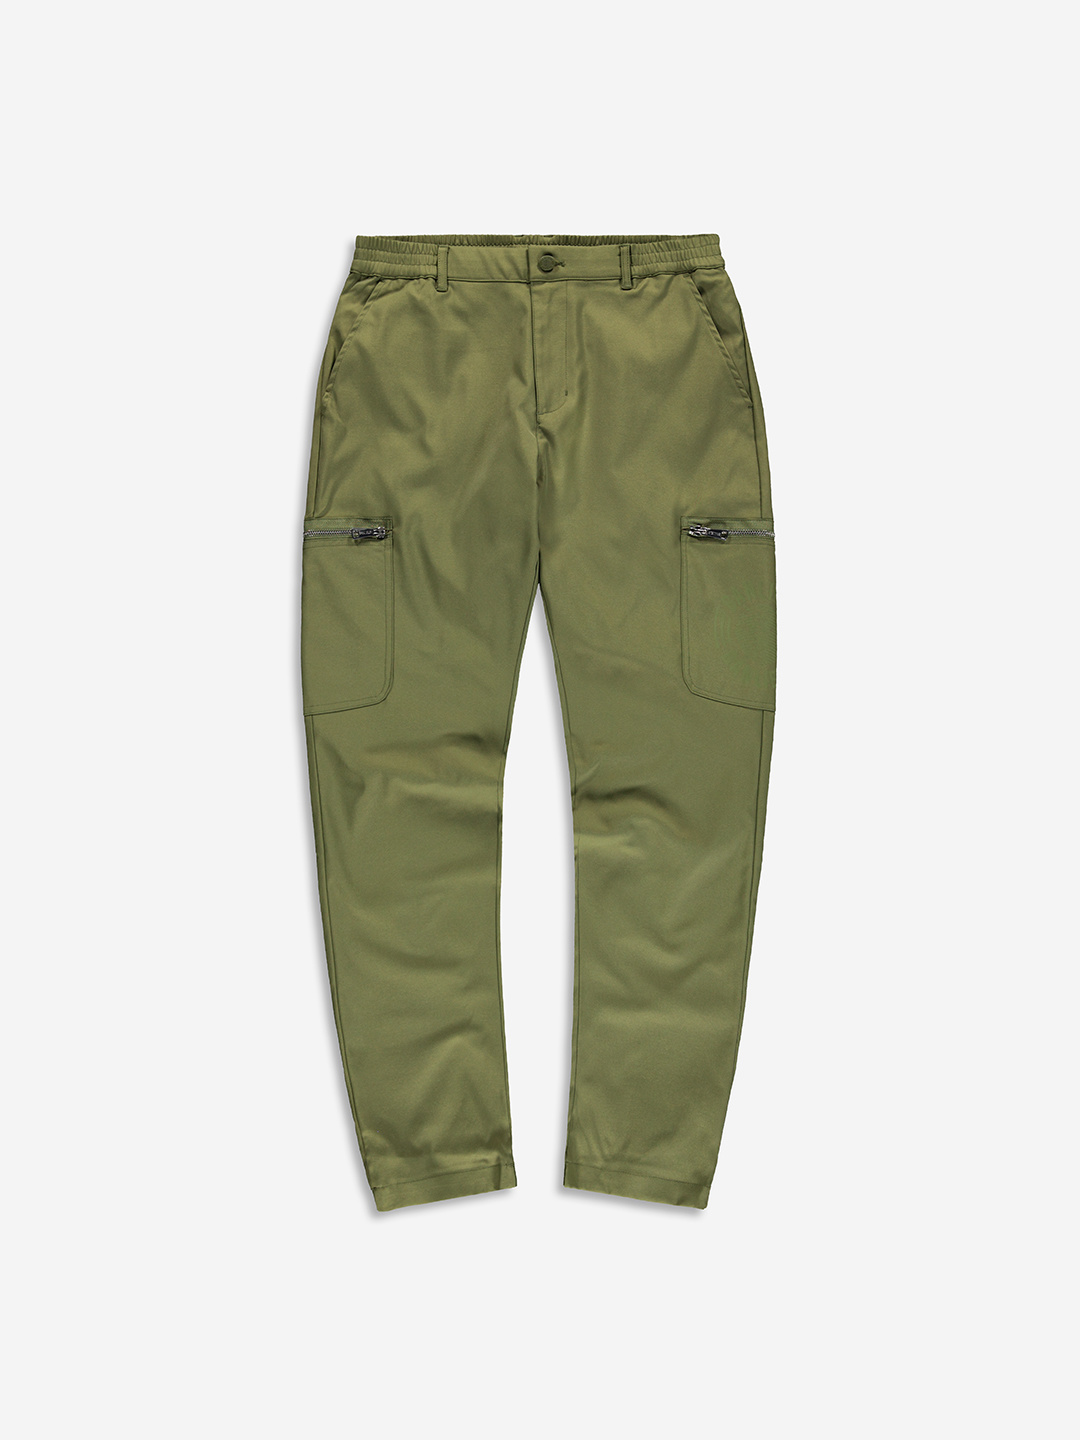 TWILL CARGO PANTS OLIVE